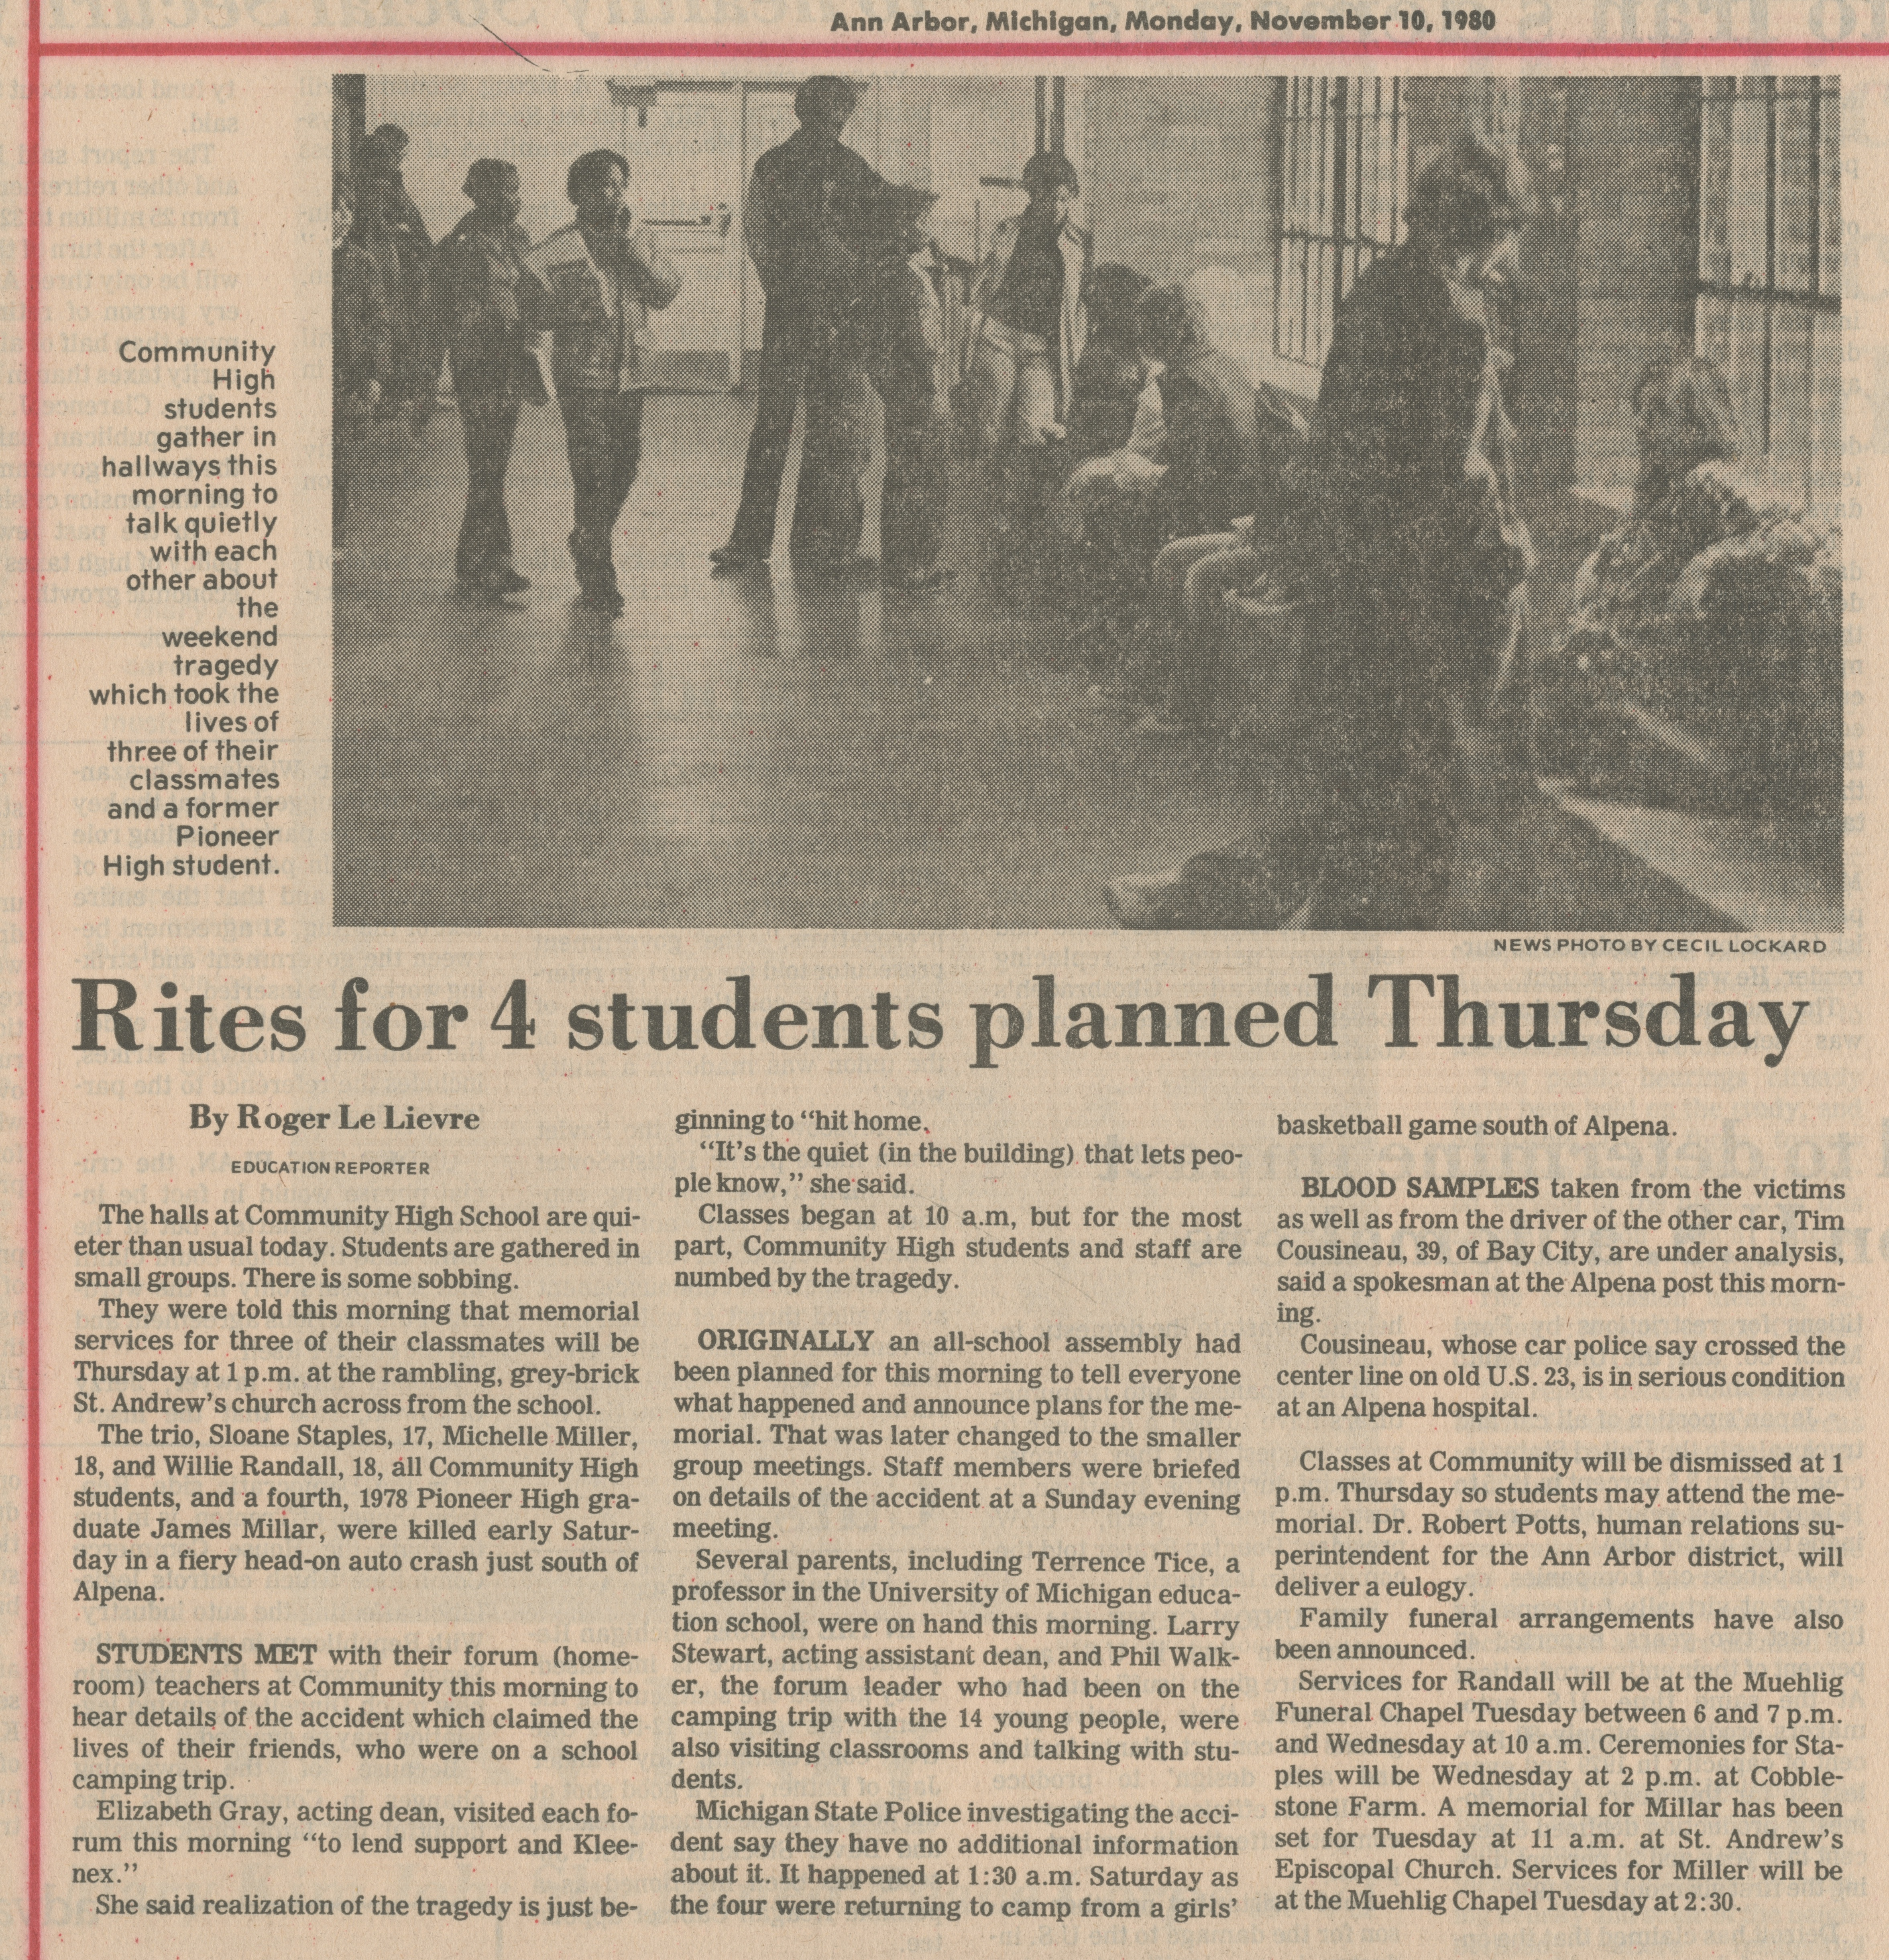 Rites for 4 students planned Thursday image